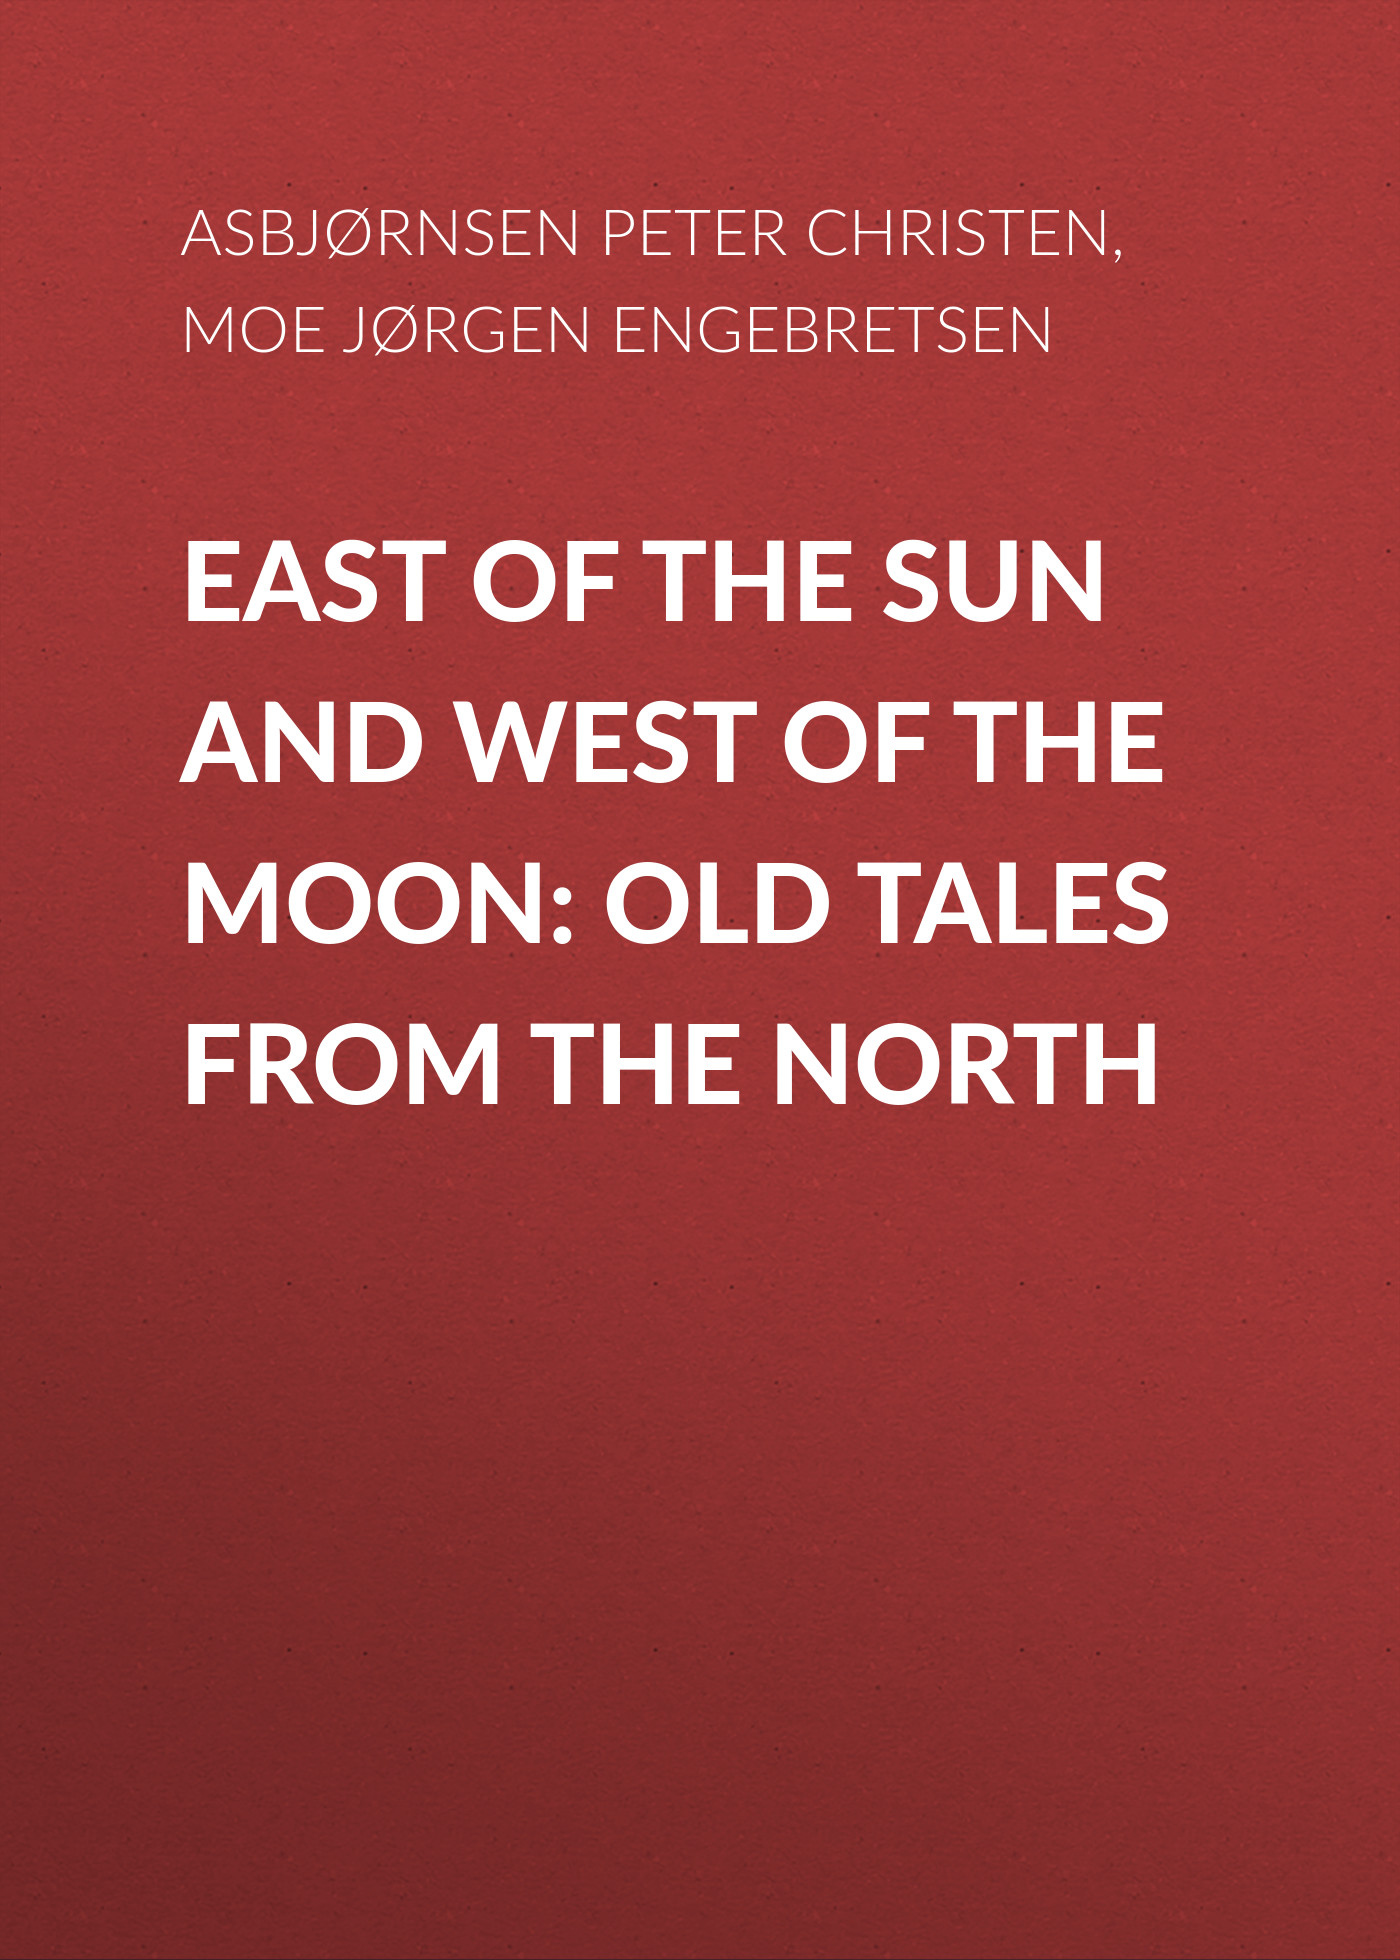 Asbjørnsen Peter Christen East of the Sun and West of the Moon: Old Tales from the North east of the chesapeake